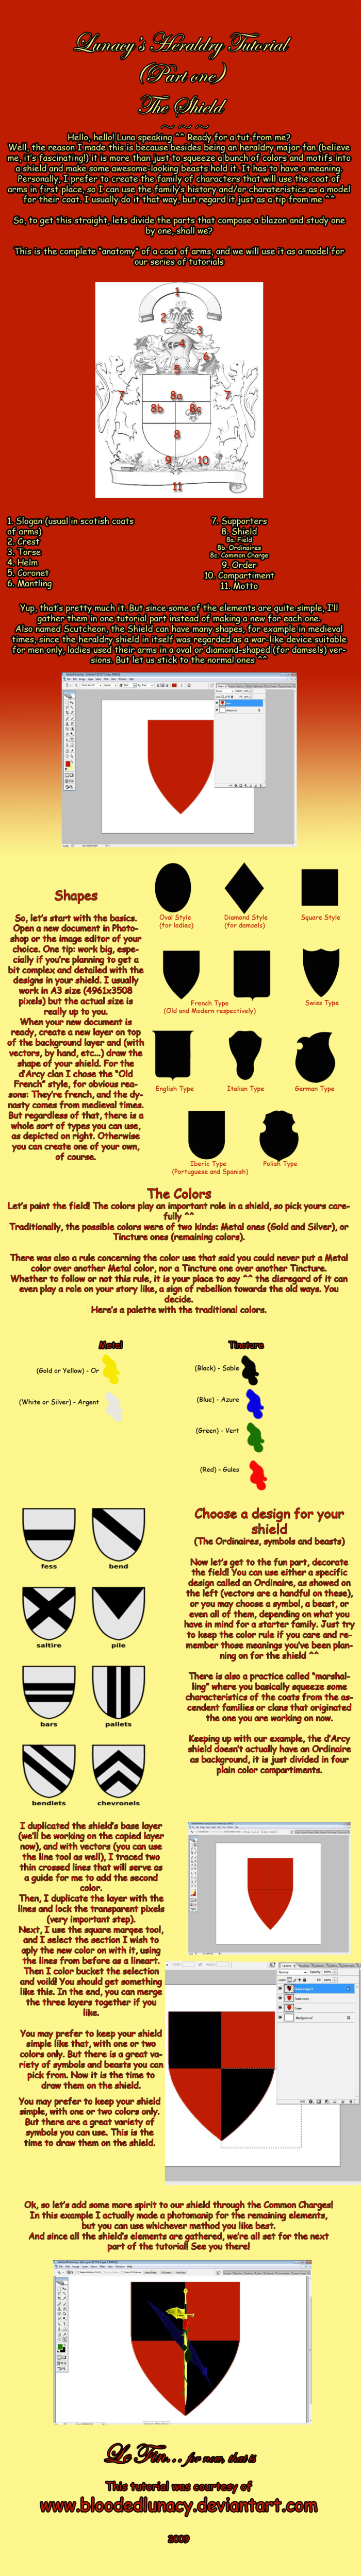 Tutorial on Heraldry - Part 1 by BloodedLunacy